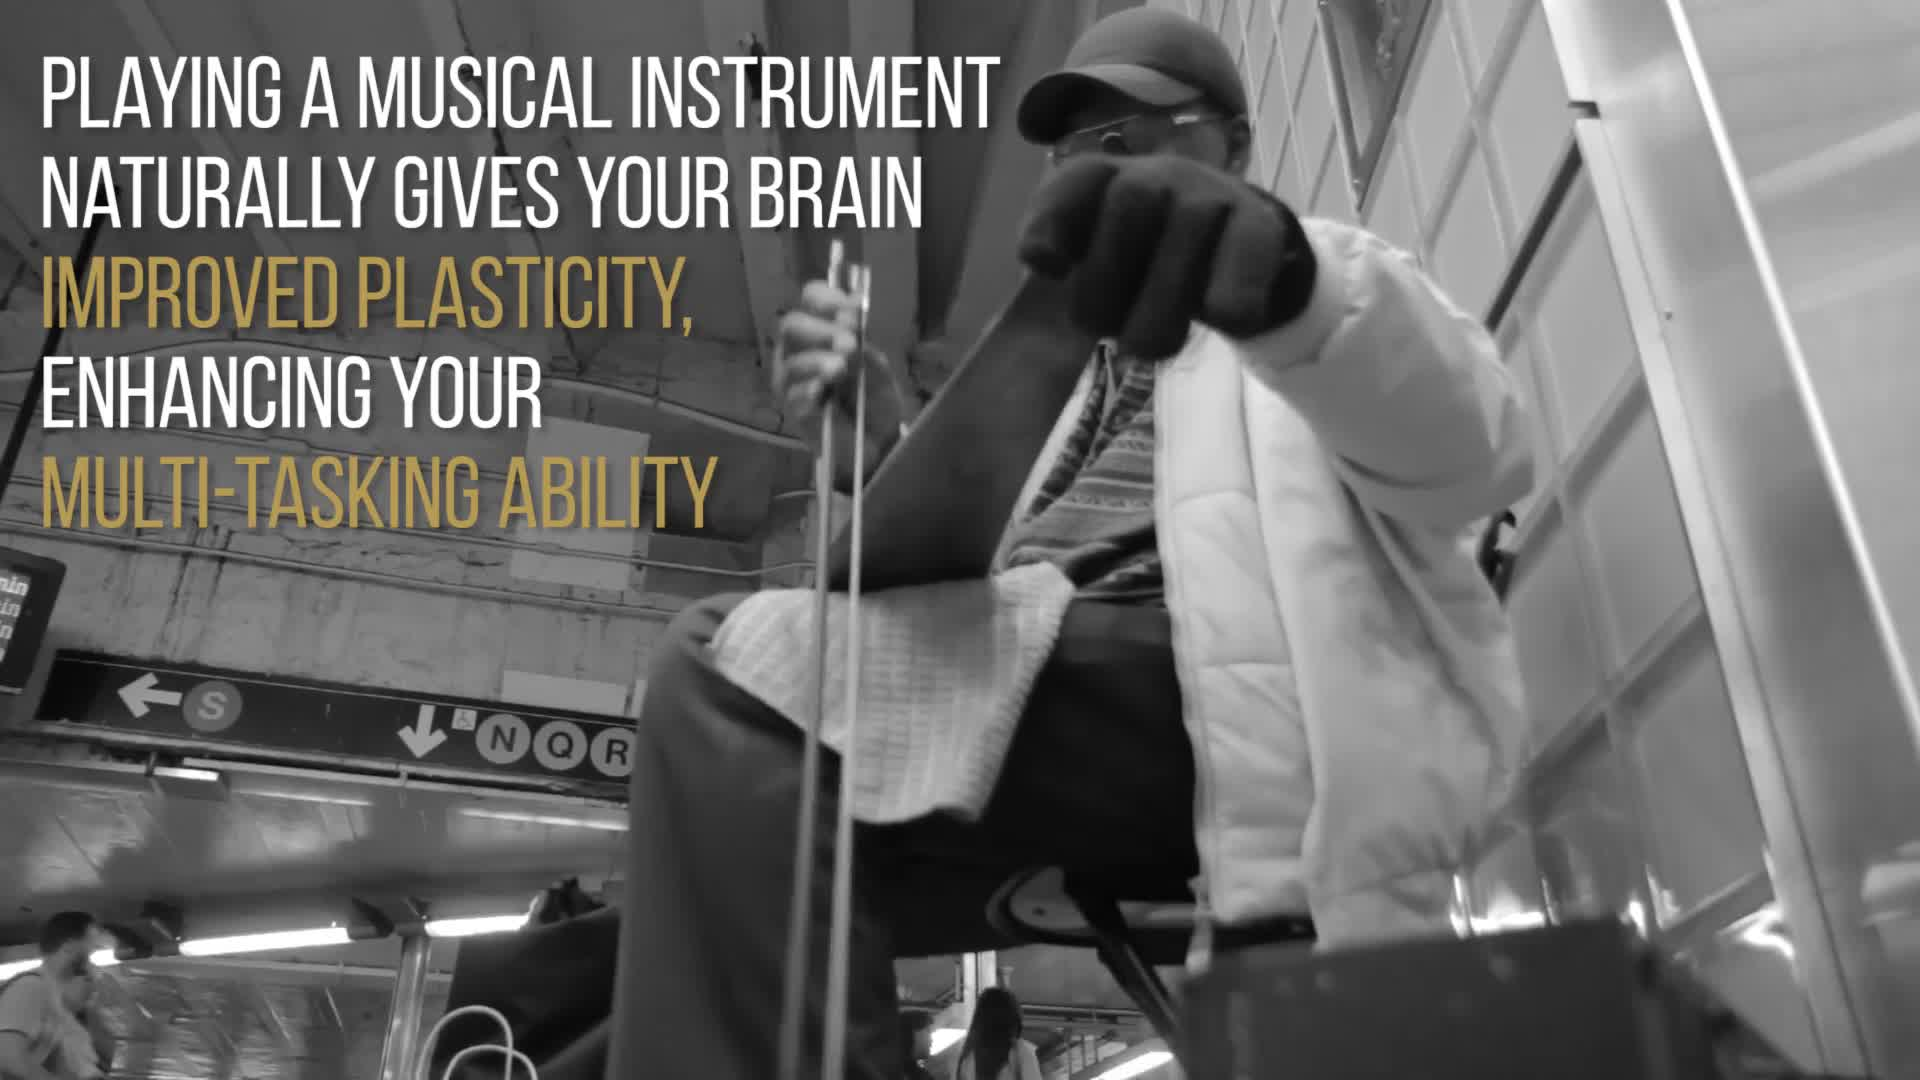 Benefits of playing an instrument for your brain